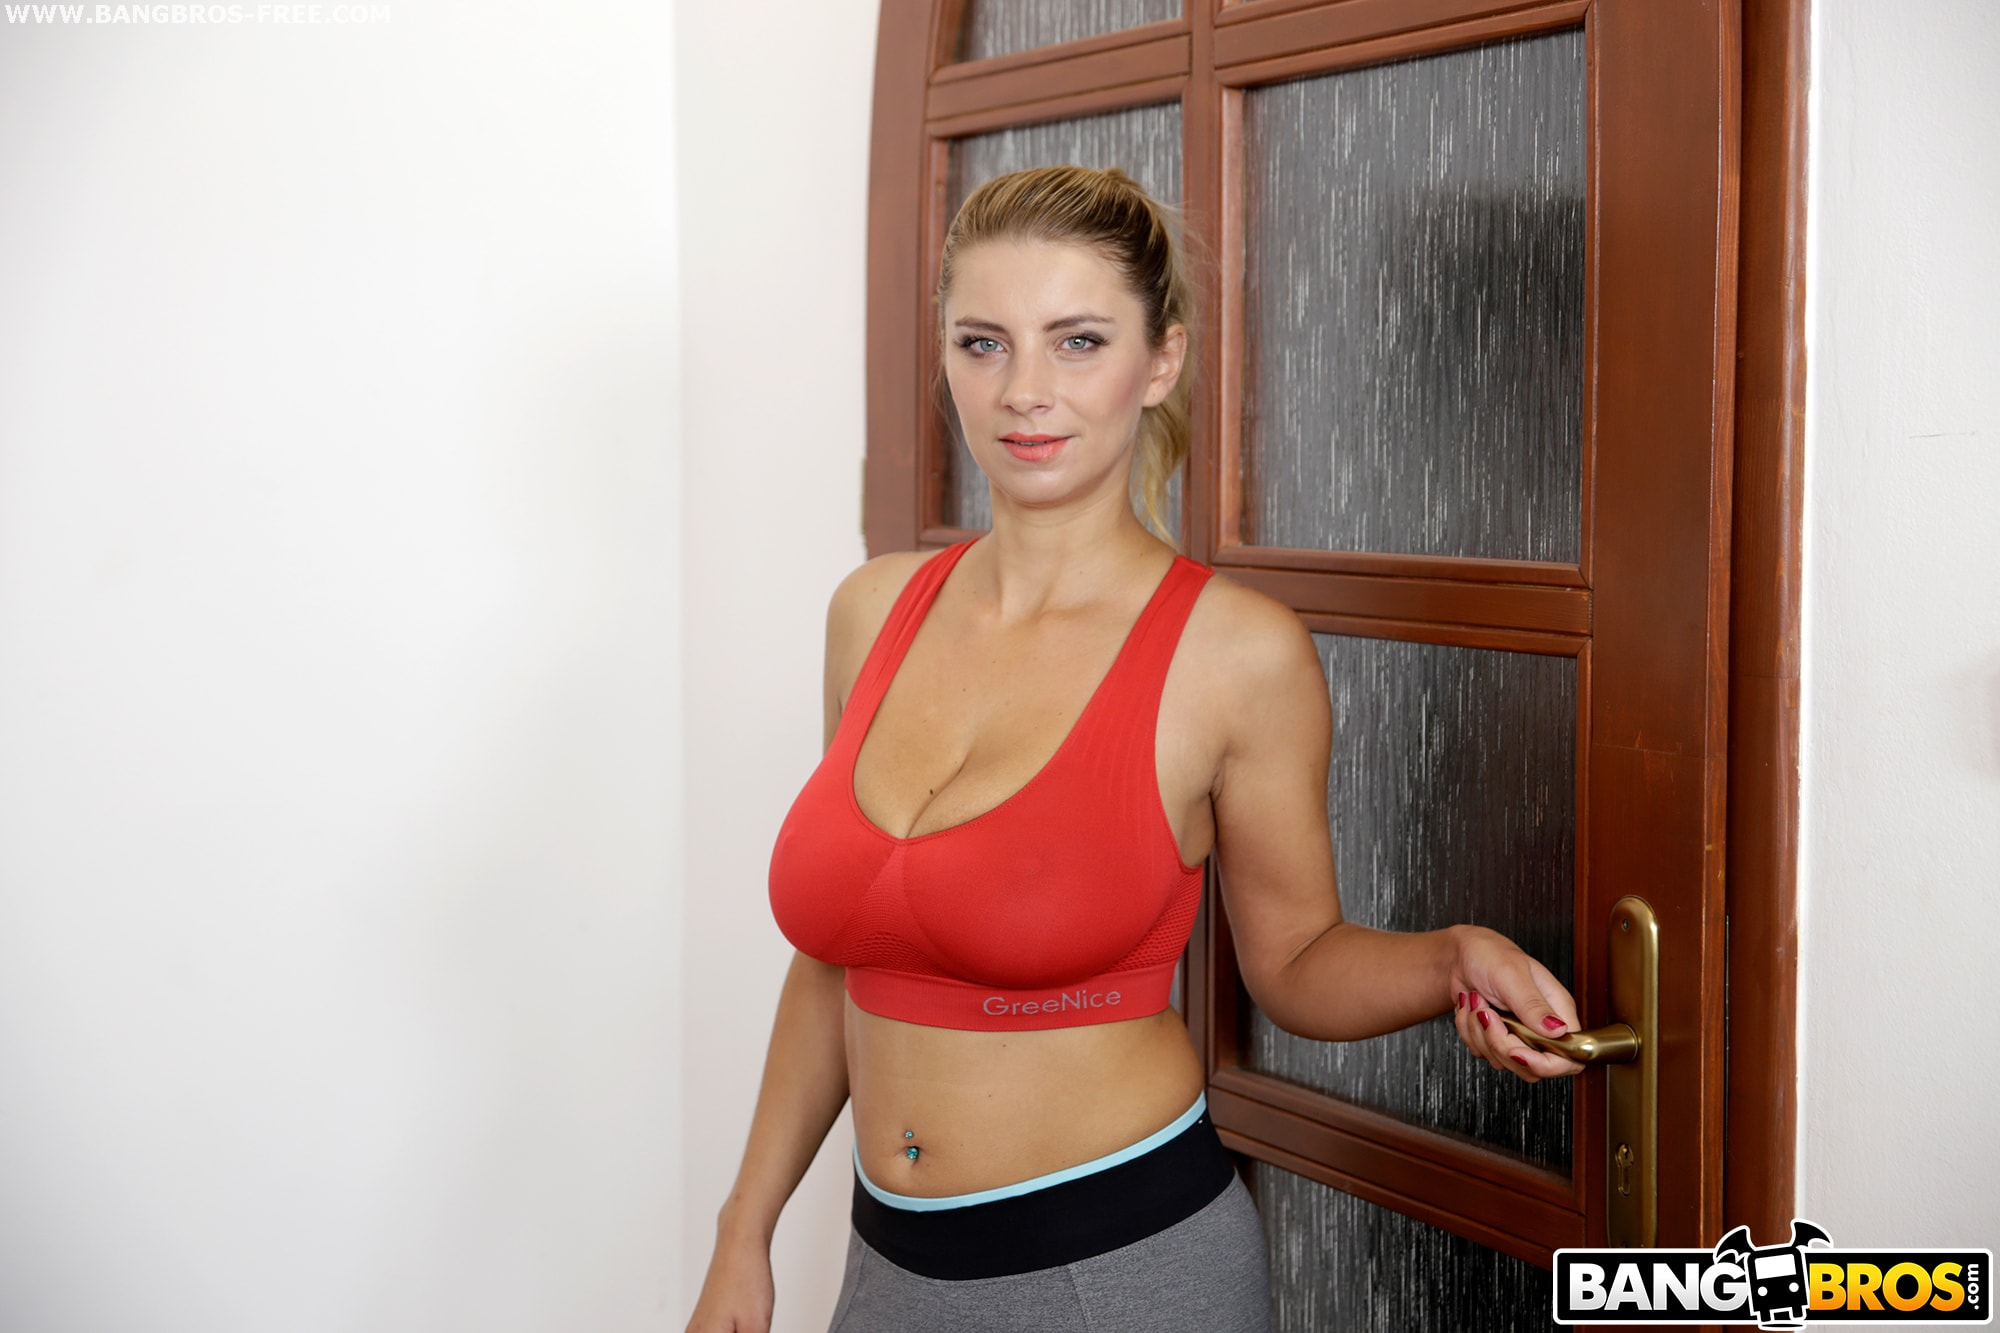 Bangbros 'Big Tits and A Creampie For You' starring Katarina Hartlova (photo 3)